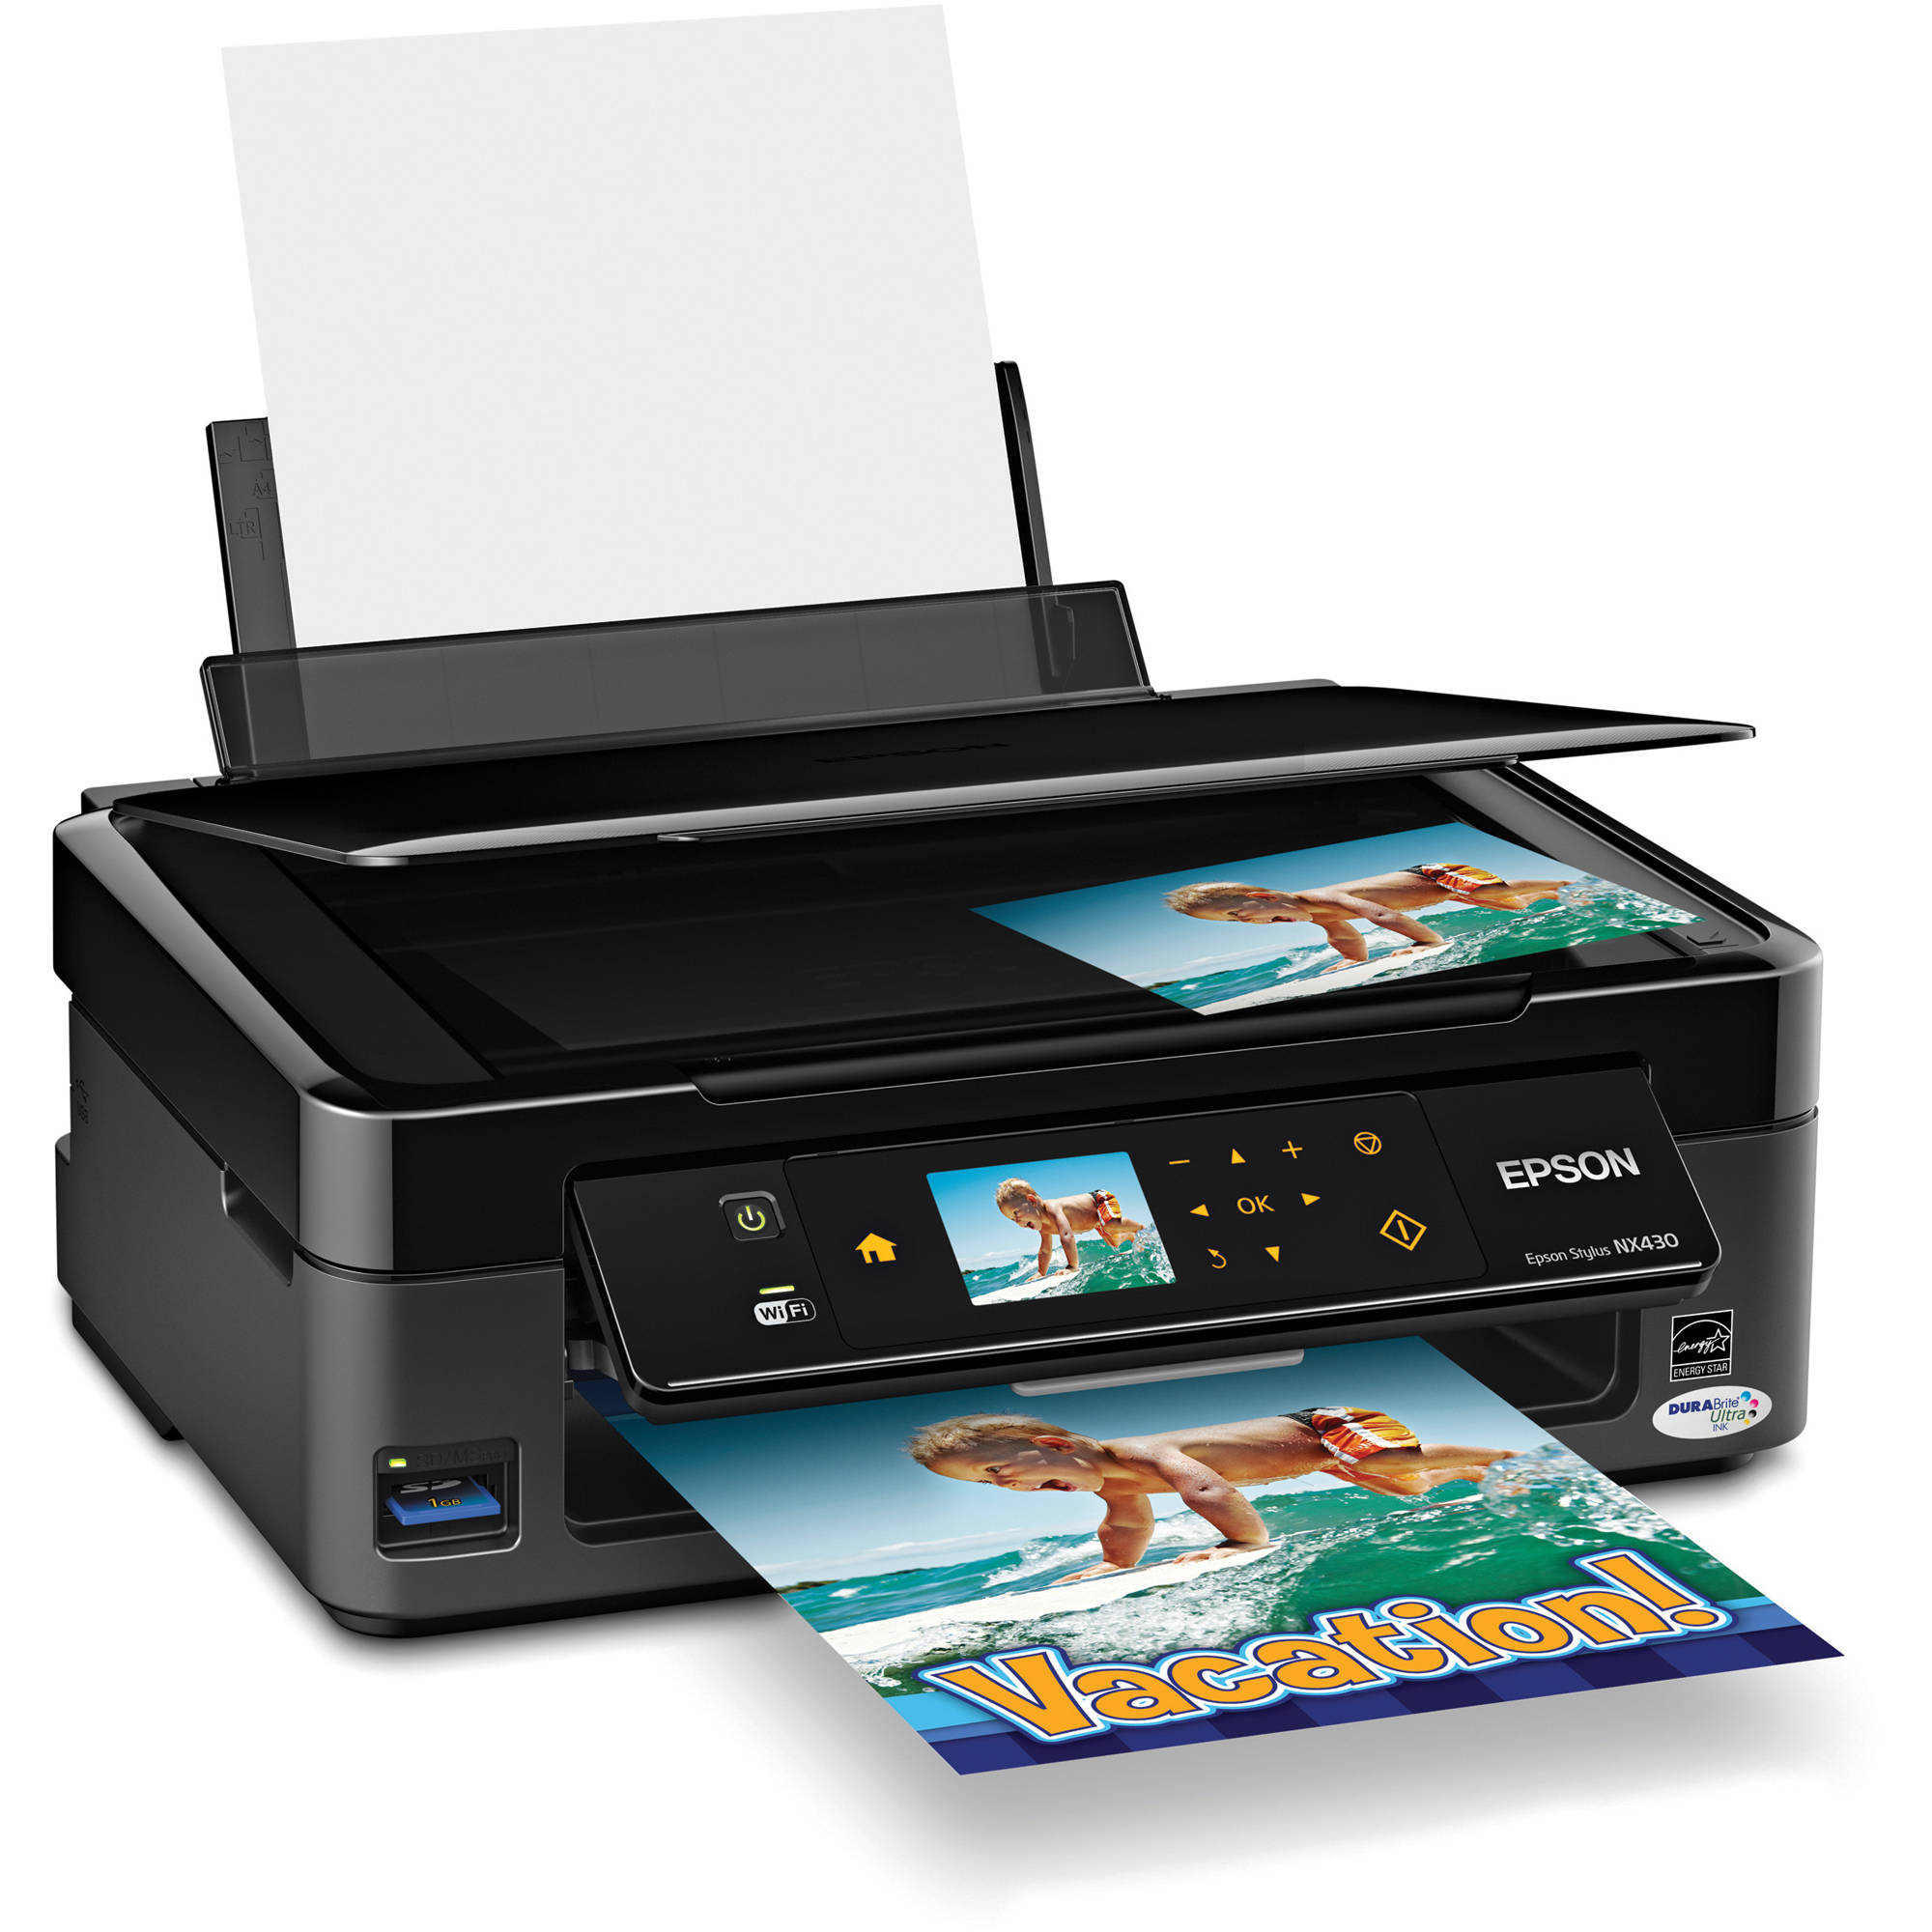 epson software nx430 rh epson software nx430 angelayu us epson stylus nx330 manual español epson stylus nx330 manual español